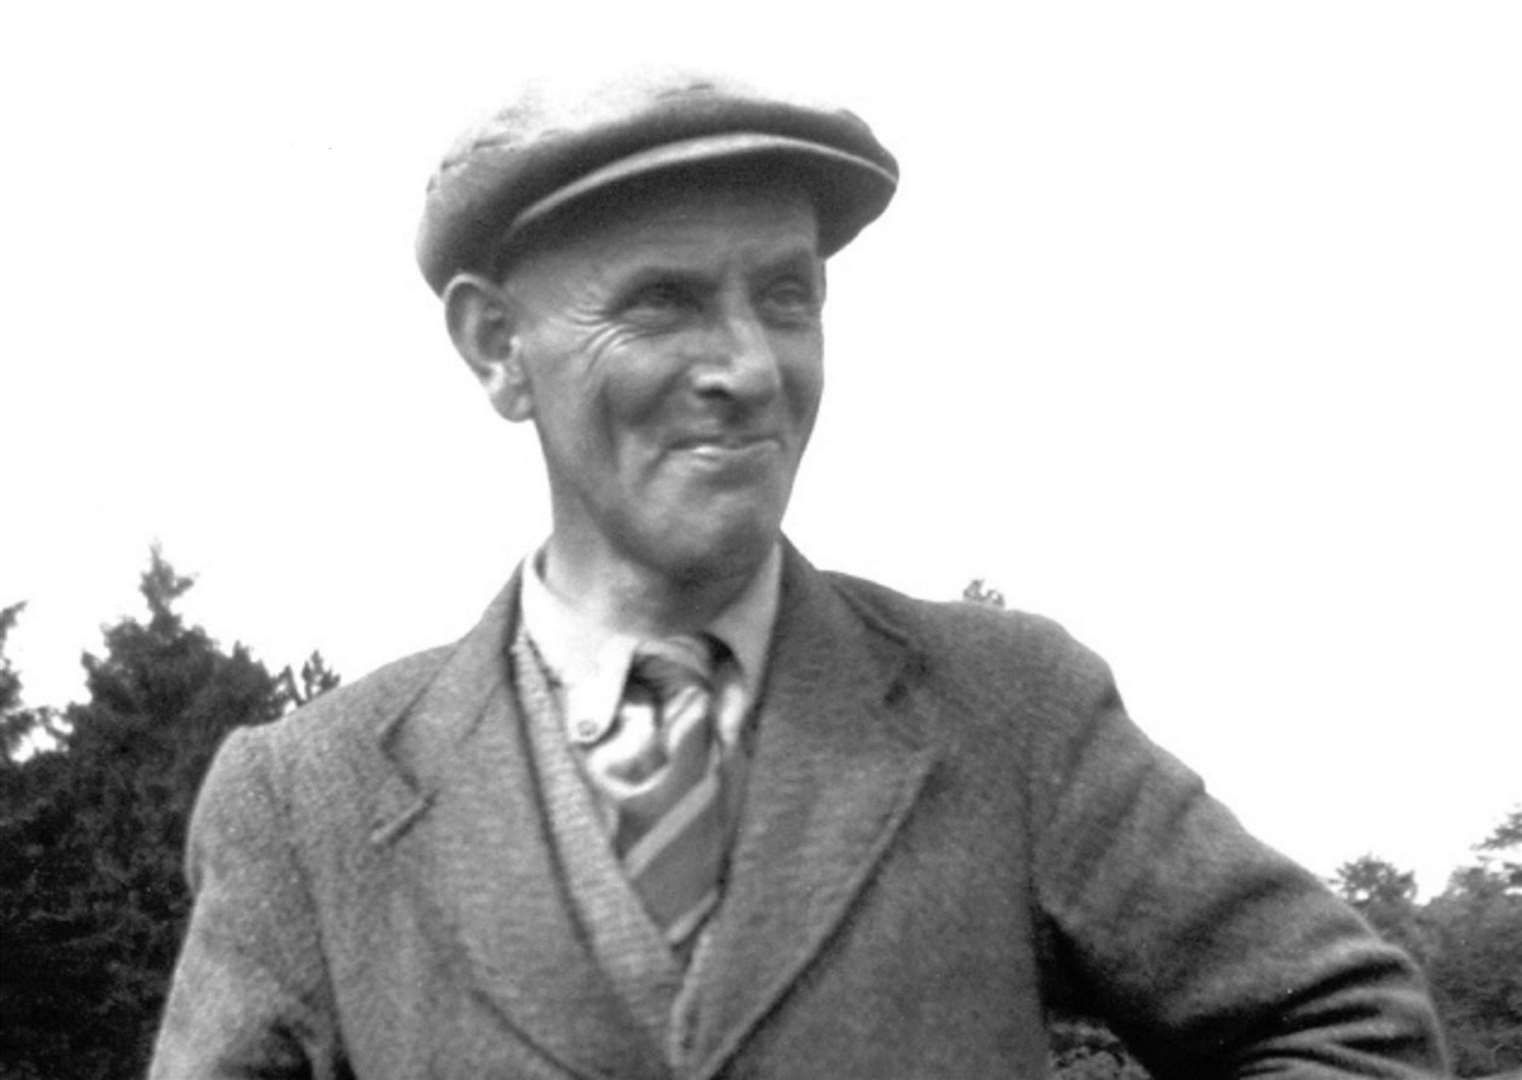 Basil Brown -Sutton Hoo archeologist